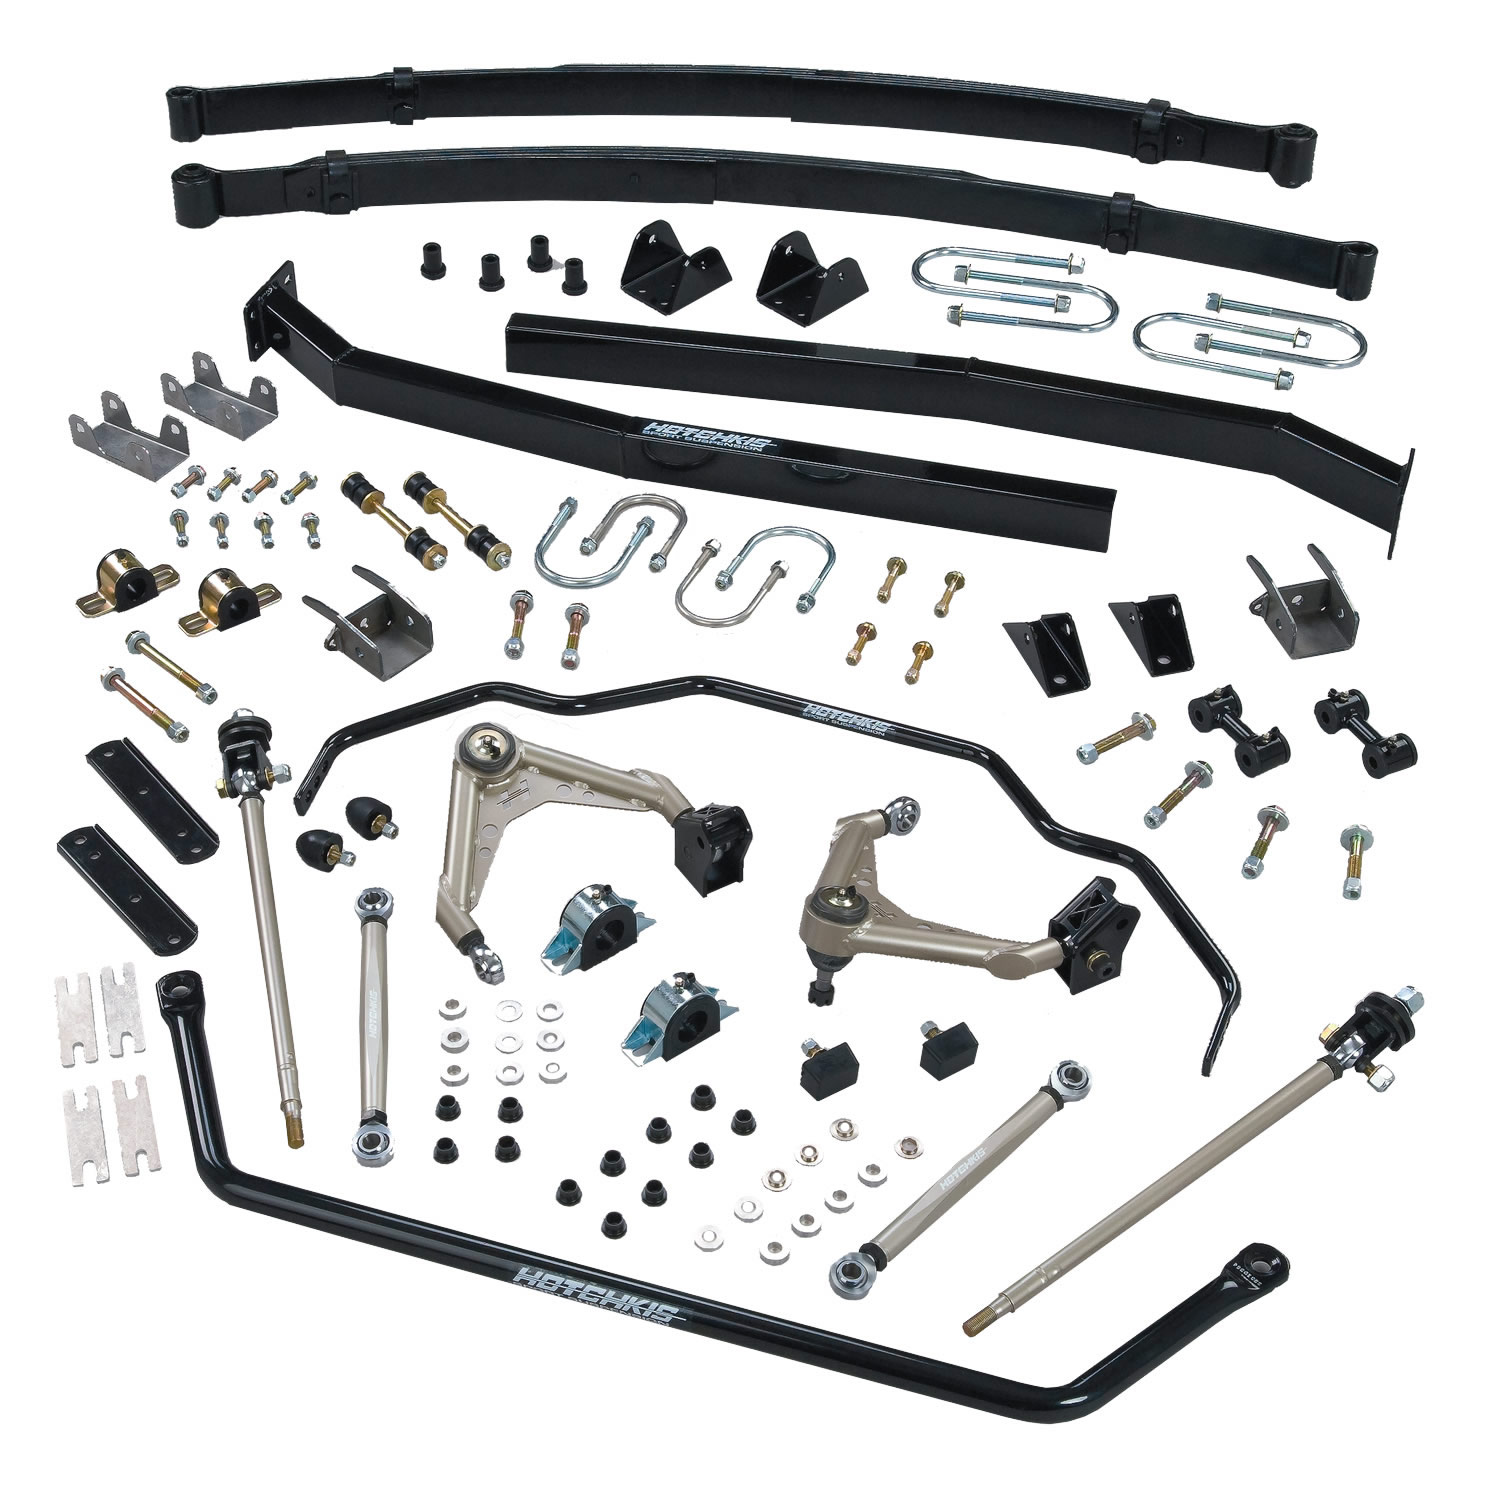 HOTCHKIS SPORT SUSPENSION SYSTEMS PARTS AND PLETE BOLT IN